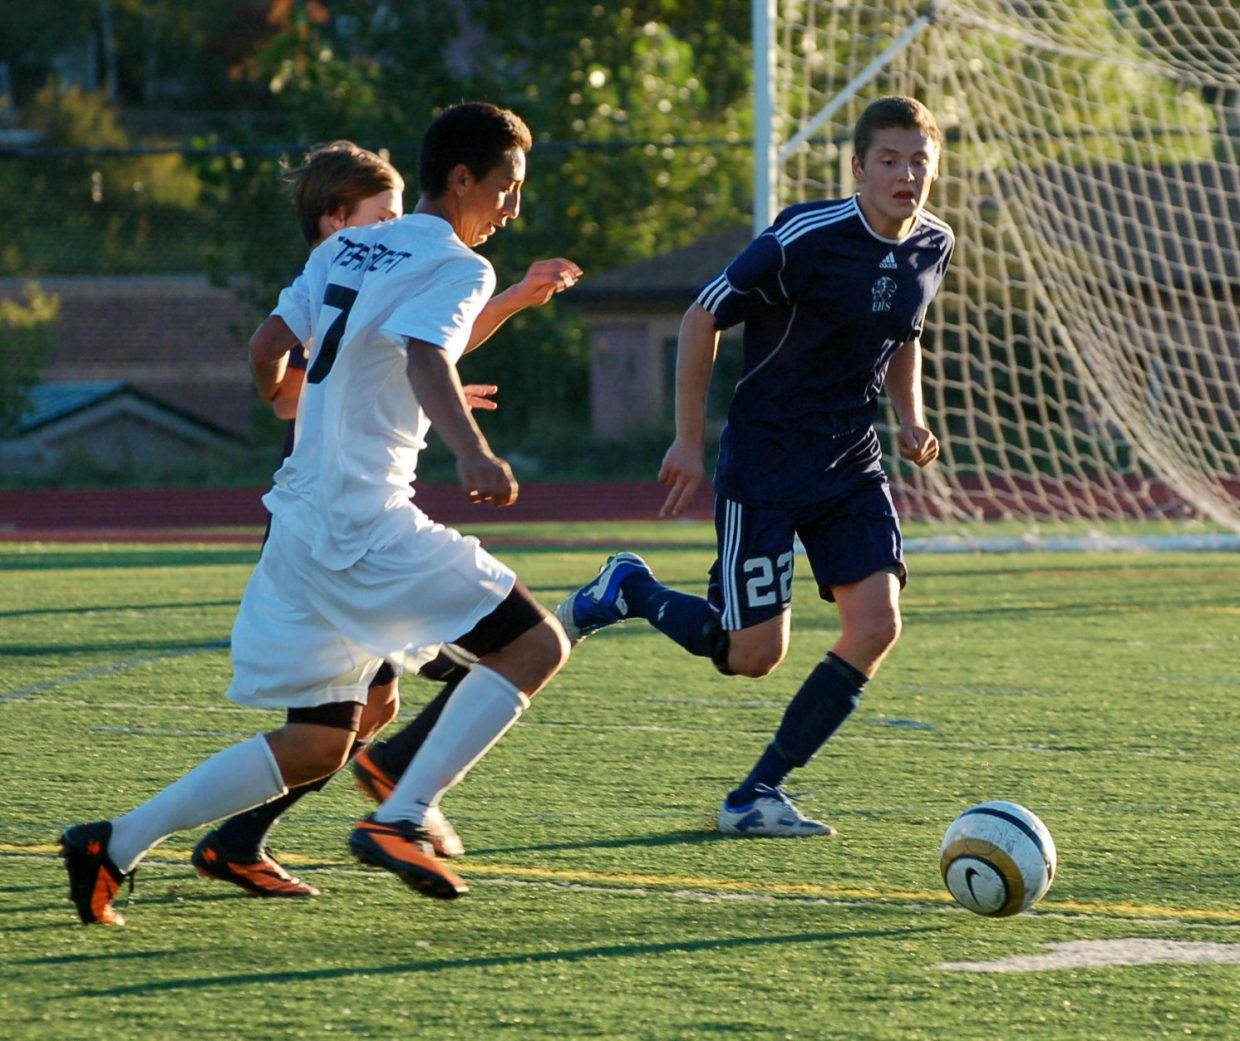 Hector Lopez fights for the ball for the Sailors.